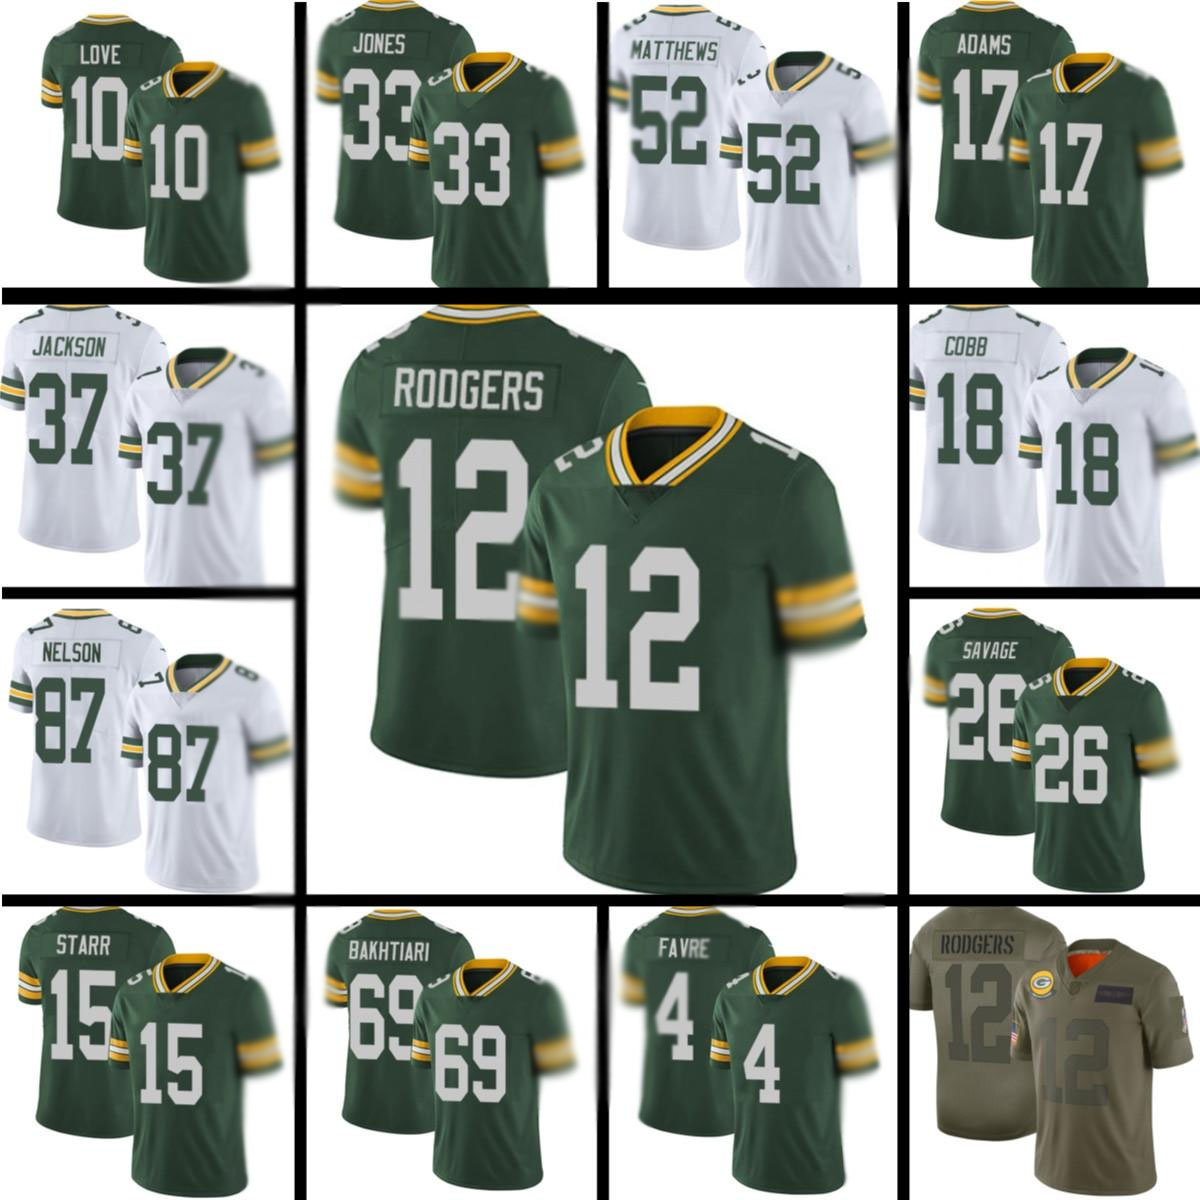 Packers Jerseys Online Shopping Buy Packers Jerseys At Dhgate Com